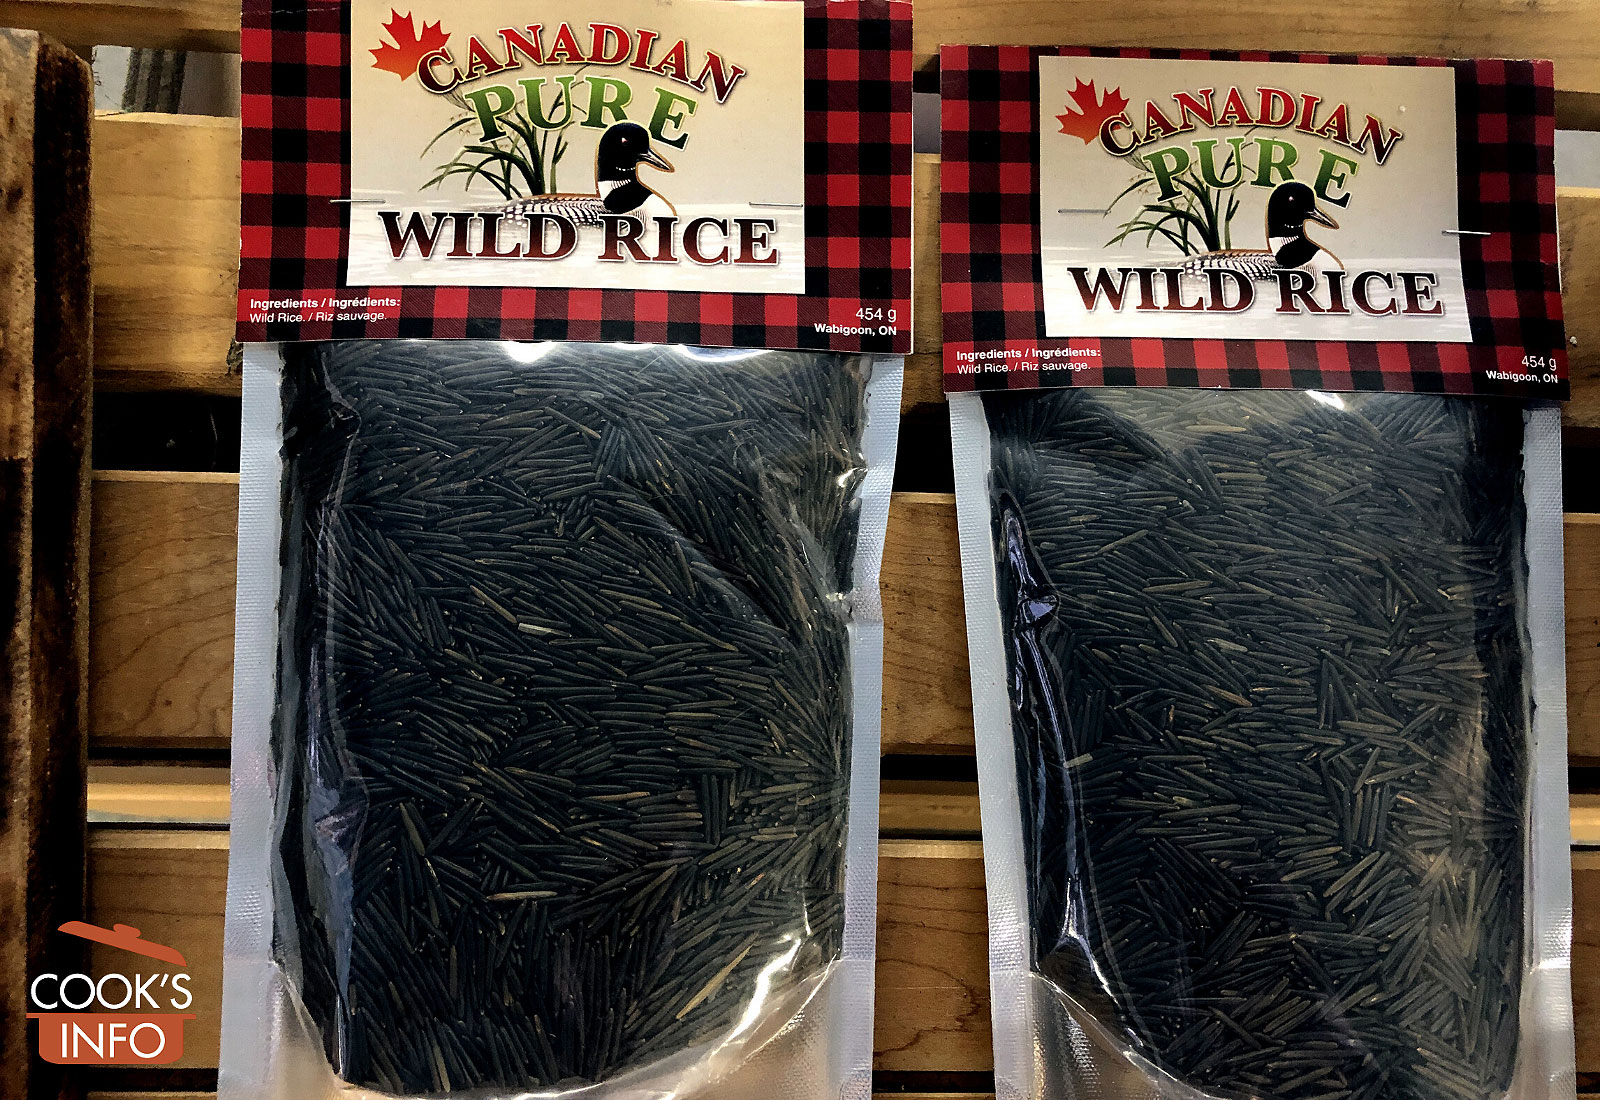 Wild rice in bags